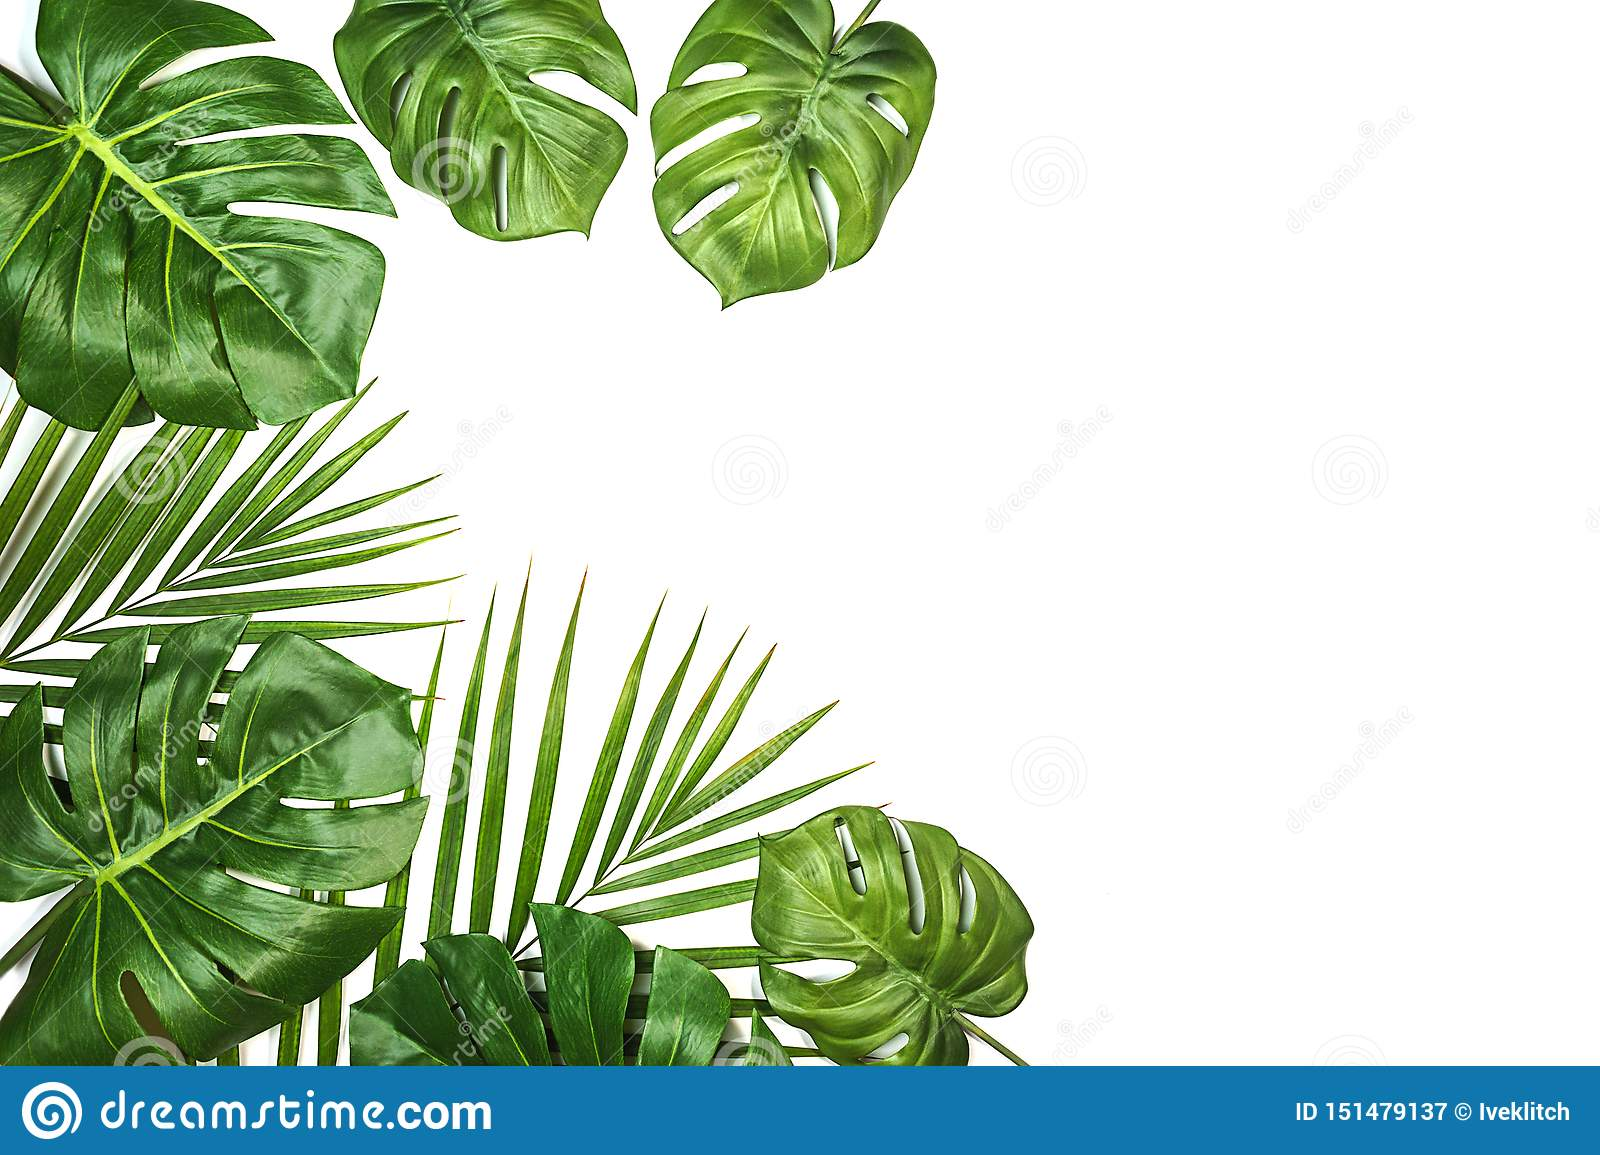 Tropical Leaves Monstera And Palm Isolated Swiss Cheese Plant Isolated On White Background Stock Image Image Of Green Monstera 151479137 .buy quality home & garden directly from china suppliers:one piece monstera artificial plants artifici flower 12 inch bjd doll big leaf black pine tree accessory home jewelery box for necklace aztec. https www dreamstime com tropical leaves monstera palm isolated swiss cheese plant white background flat lay top view image151479137